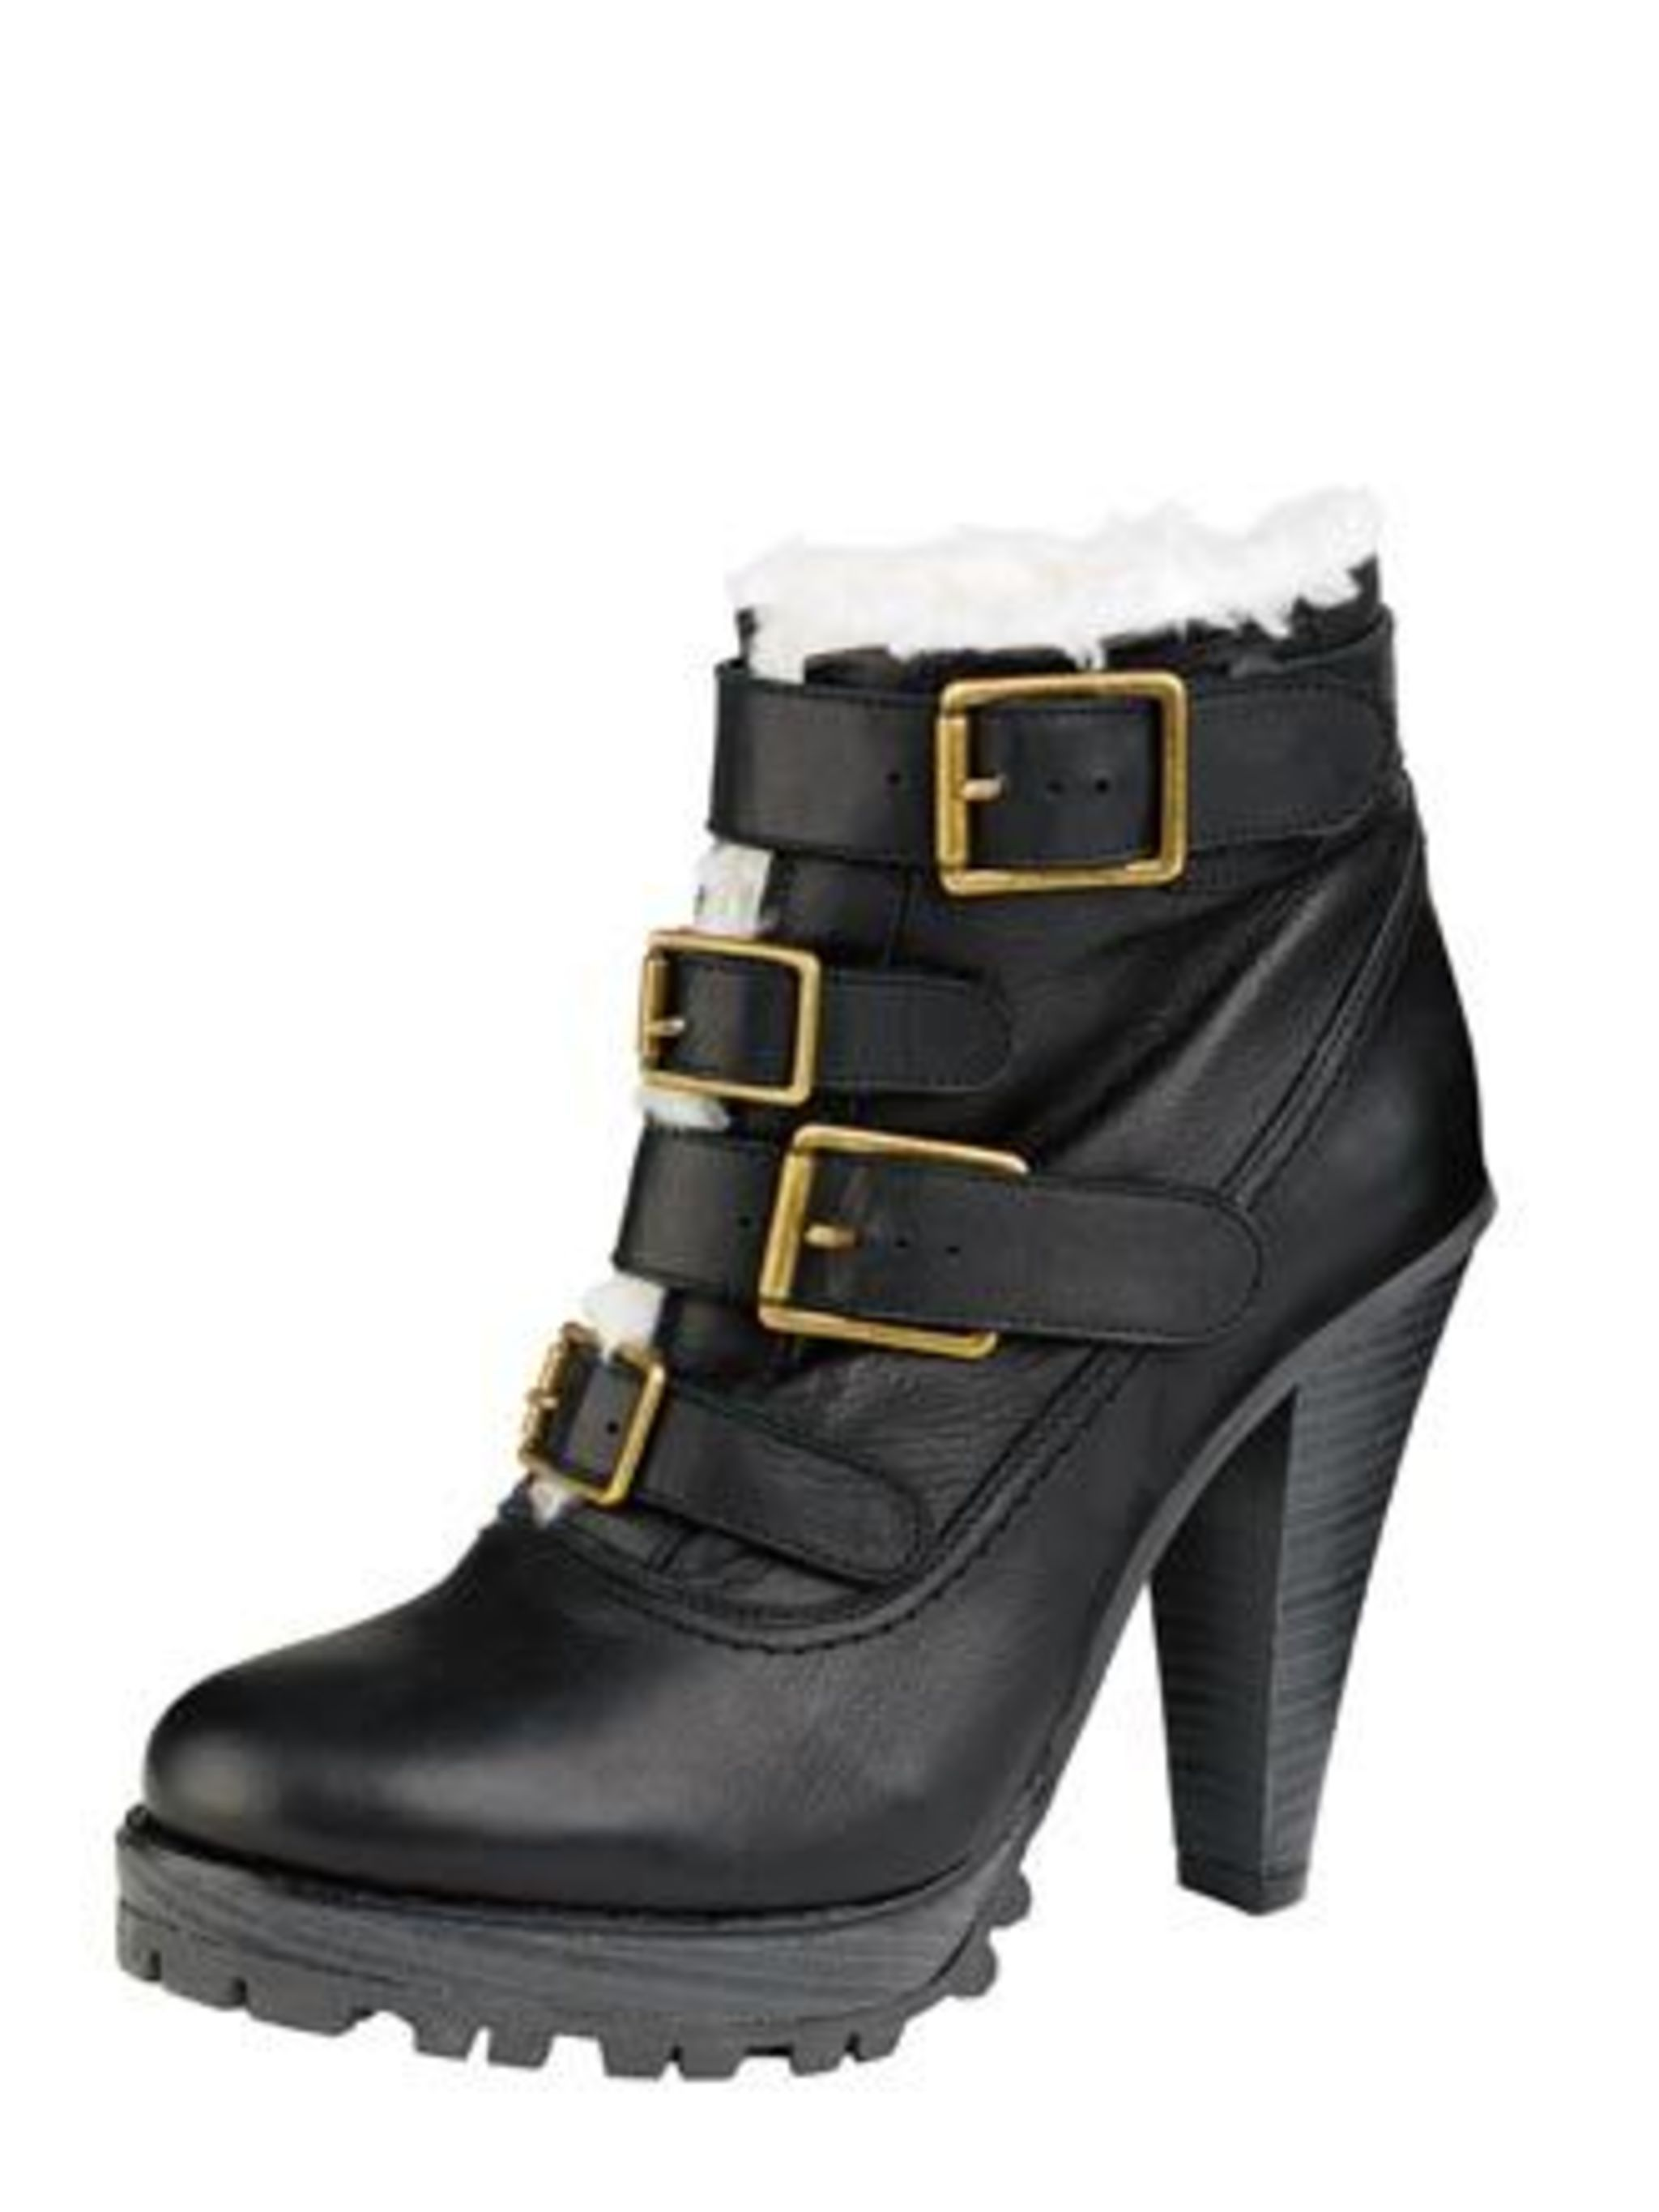 "<p>These ankle boots with tread detail, faux fur lining and buckles tick all the right boxes. Who cares if it's still warm outside? We'll be buying them this week before they sell out. <a href=""http://www.urbanoutfitters.co.uk/page/home"">Urban Outfitters<"